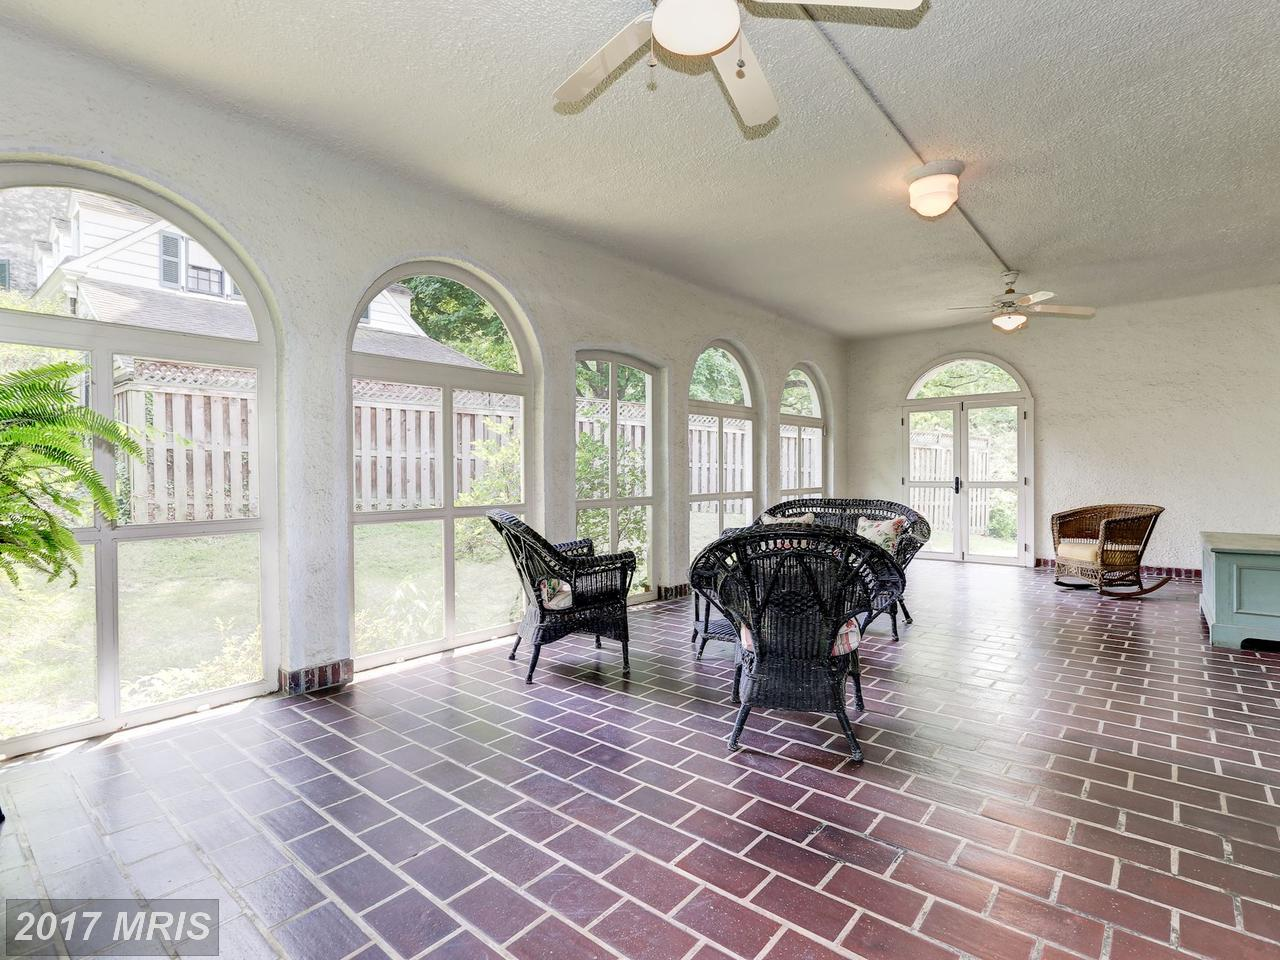 Additional photo for property listing at Detached, International - HAGERSTOWN, MD 951 THE TERRACE Hagerstown, Maryland,21742 Estados Unidos